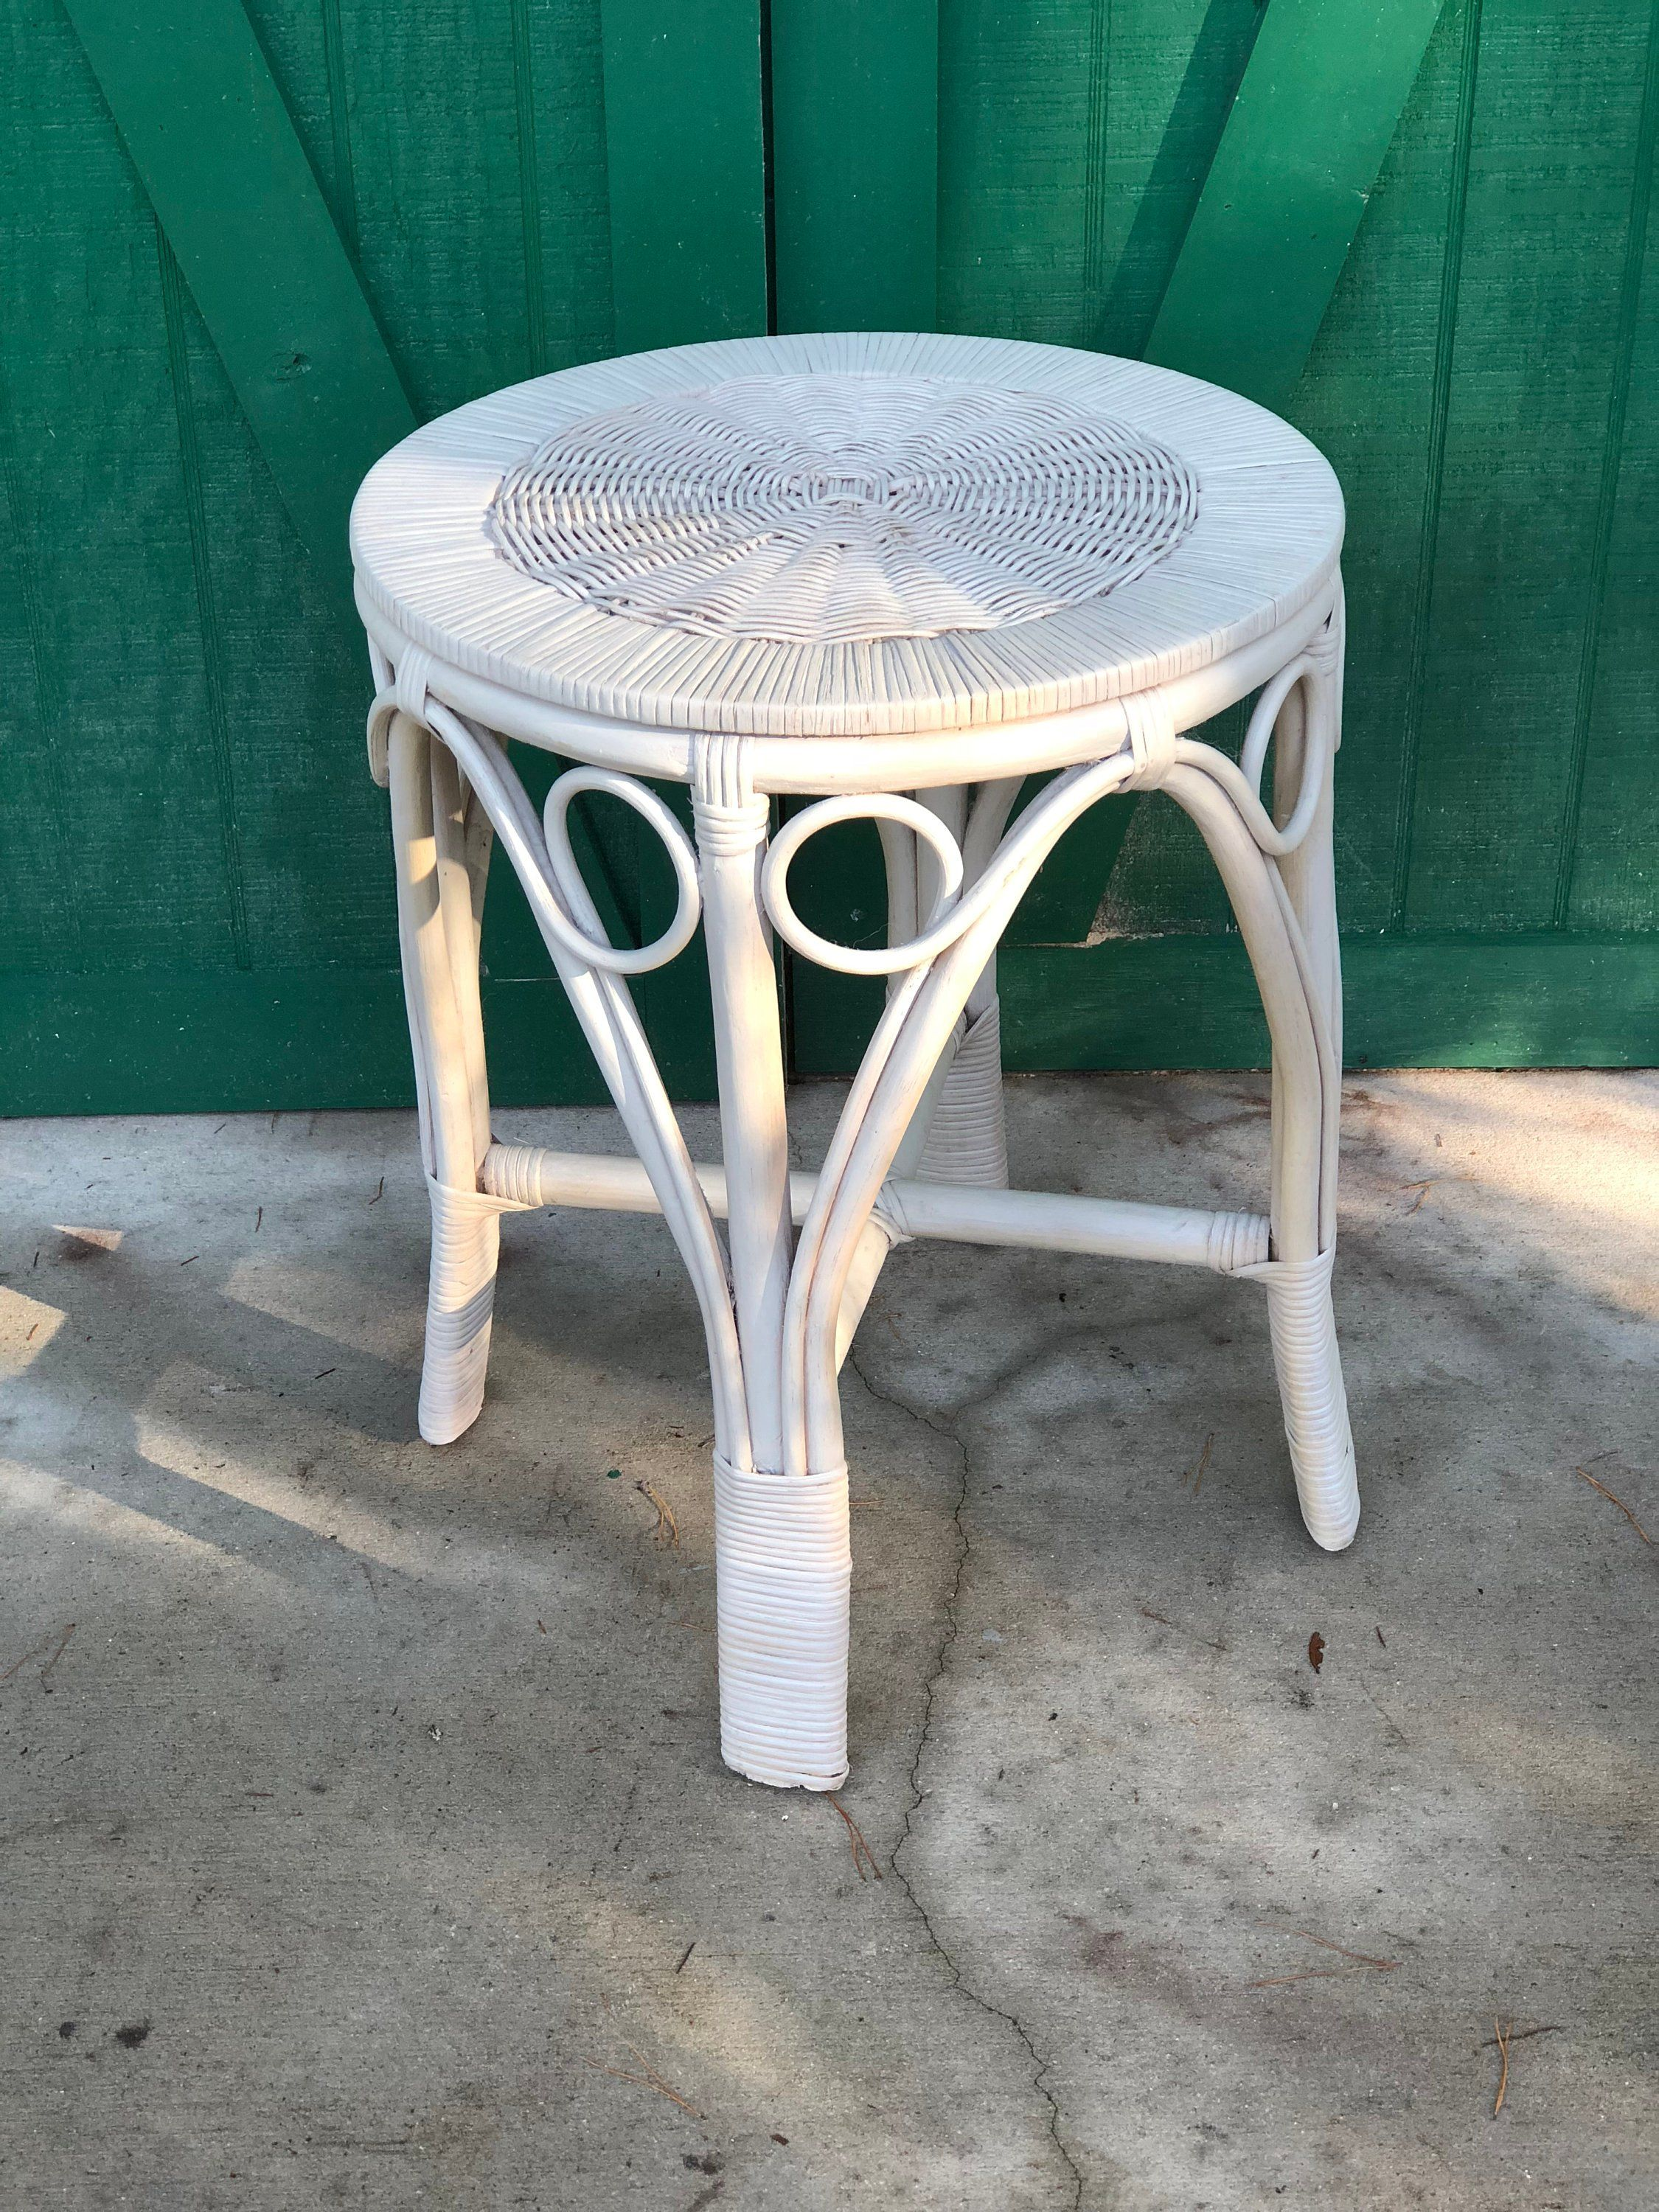 Prime Vintage Round White Wicker Table Nantucket Style Wicker Complete Home Design Collection Papxelindsey Bellcom